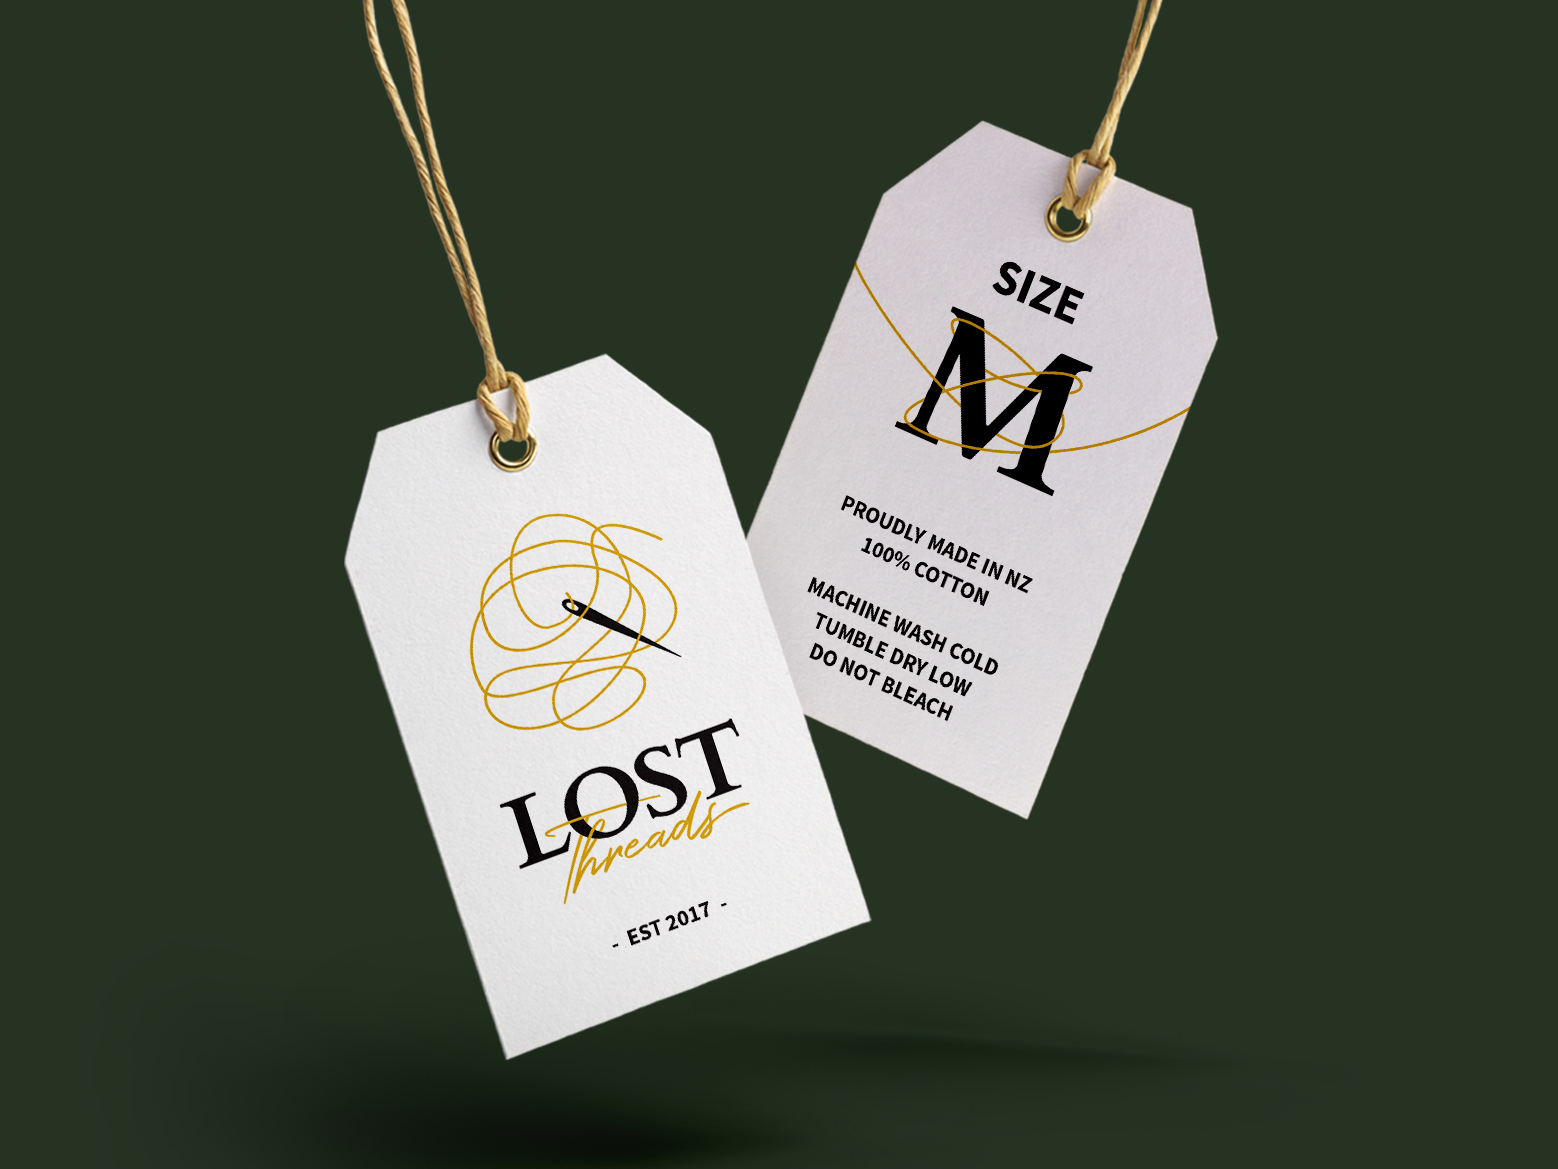 Lost Threads Tags clothing tags clothes 3d art 3d logo branding simple